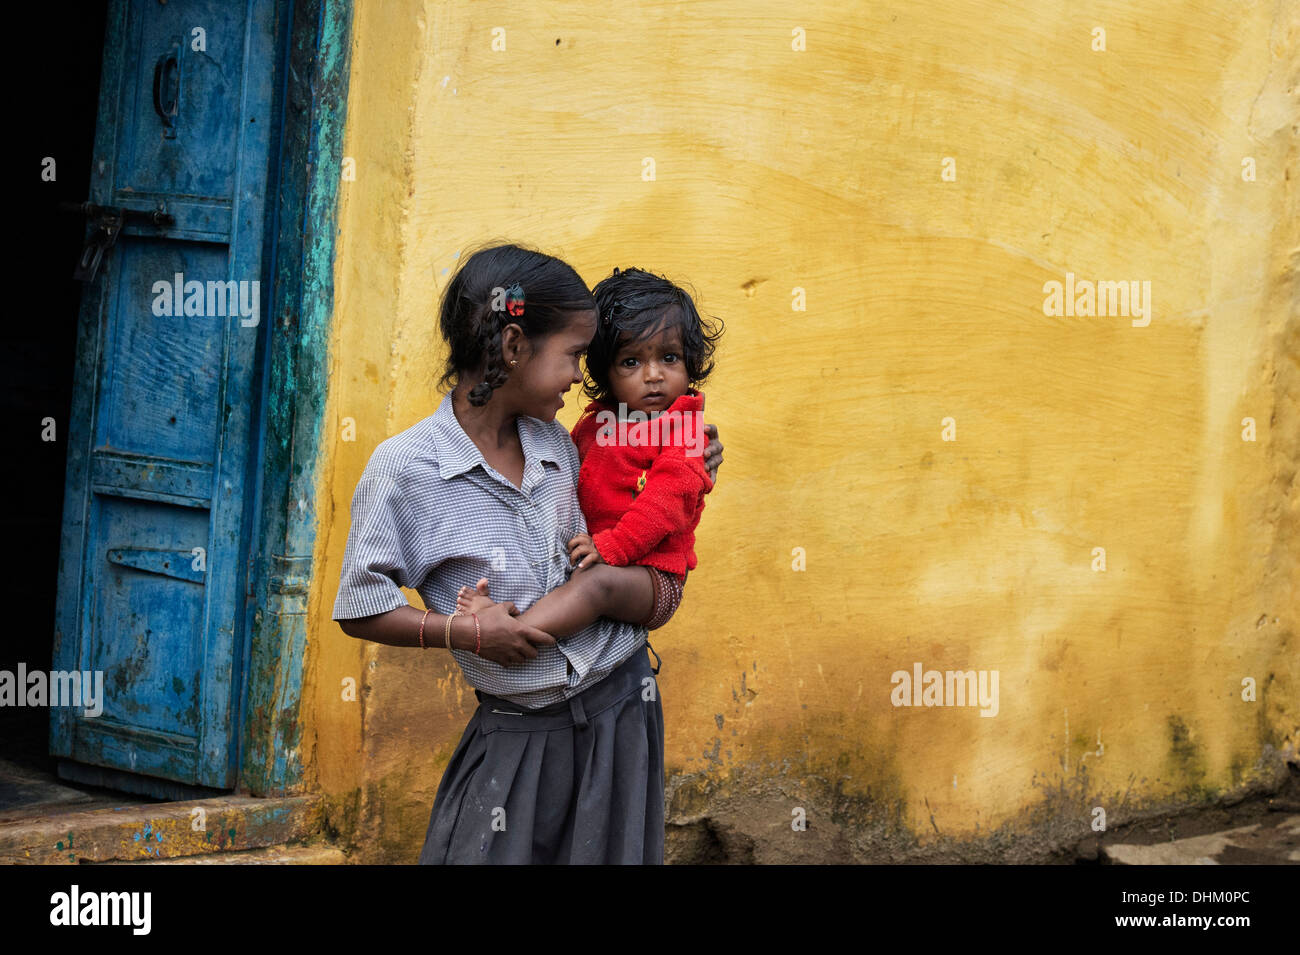 Image result for indian girl holding baby